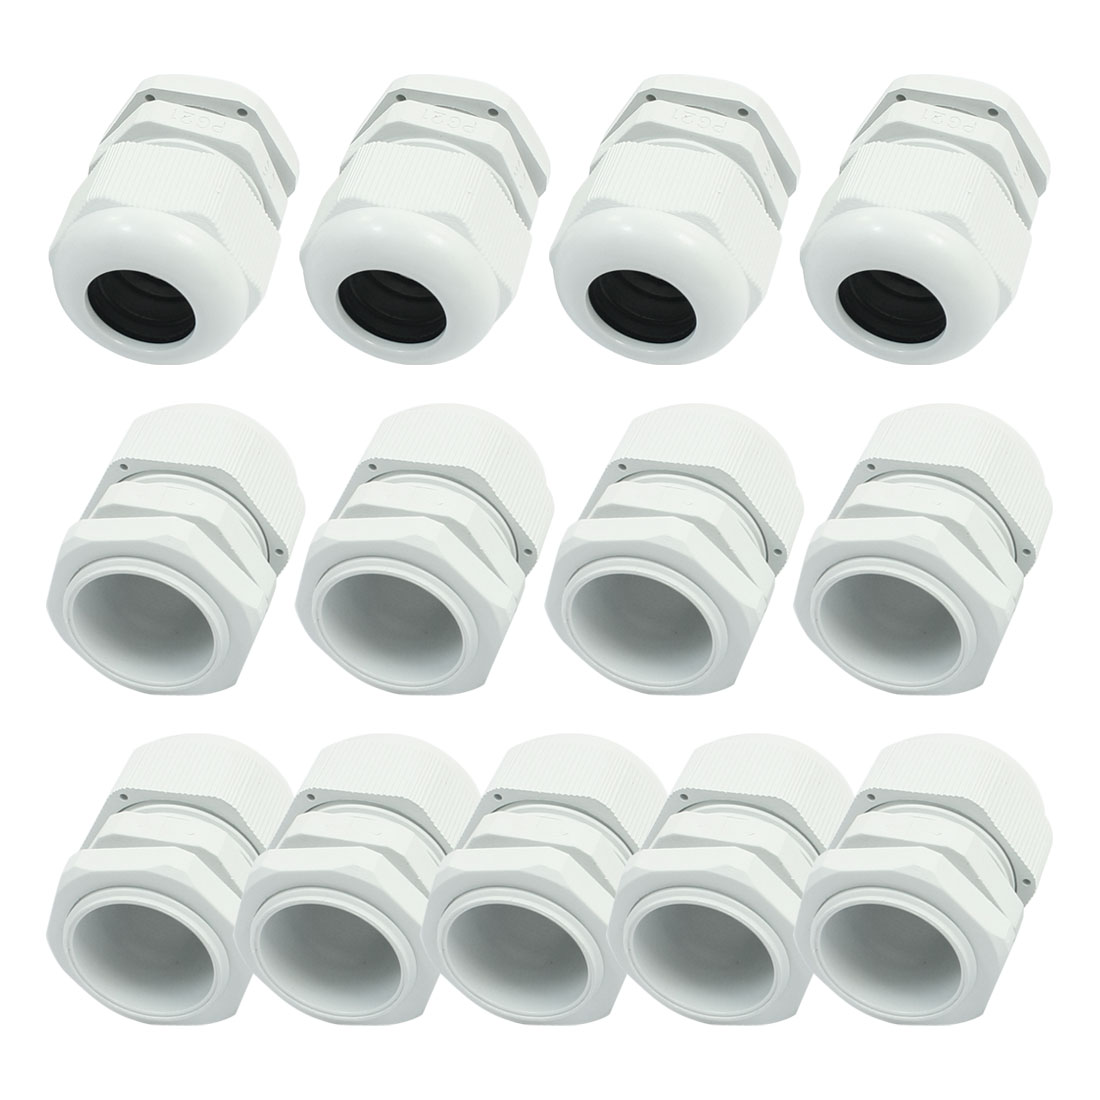 13 PCS PG21 White Plastic Waterproof Connector Locknut Stuffing Cable Gland for 9-16mm Wire